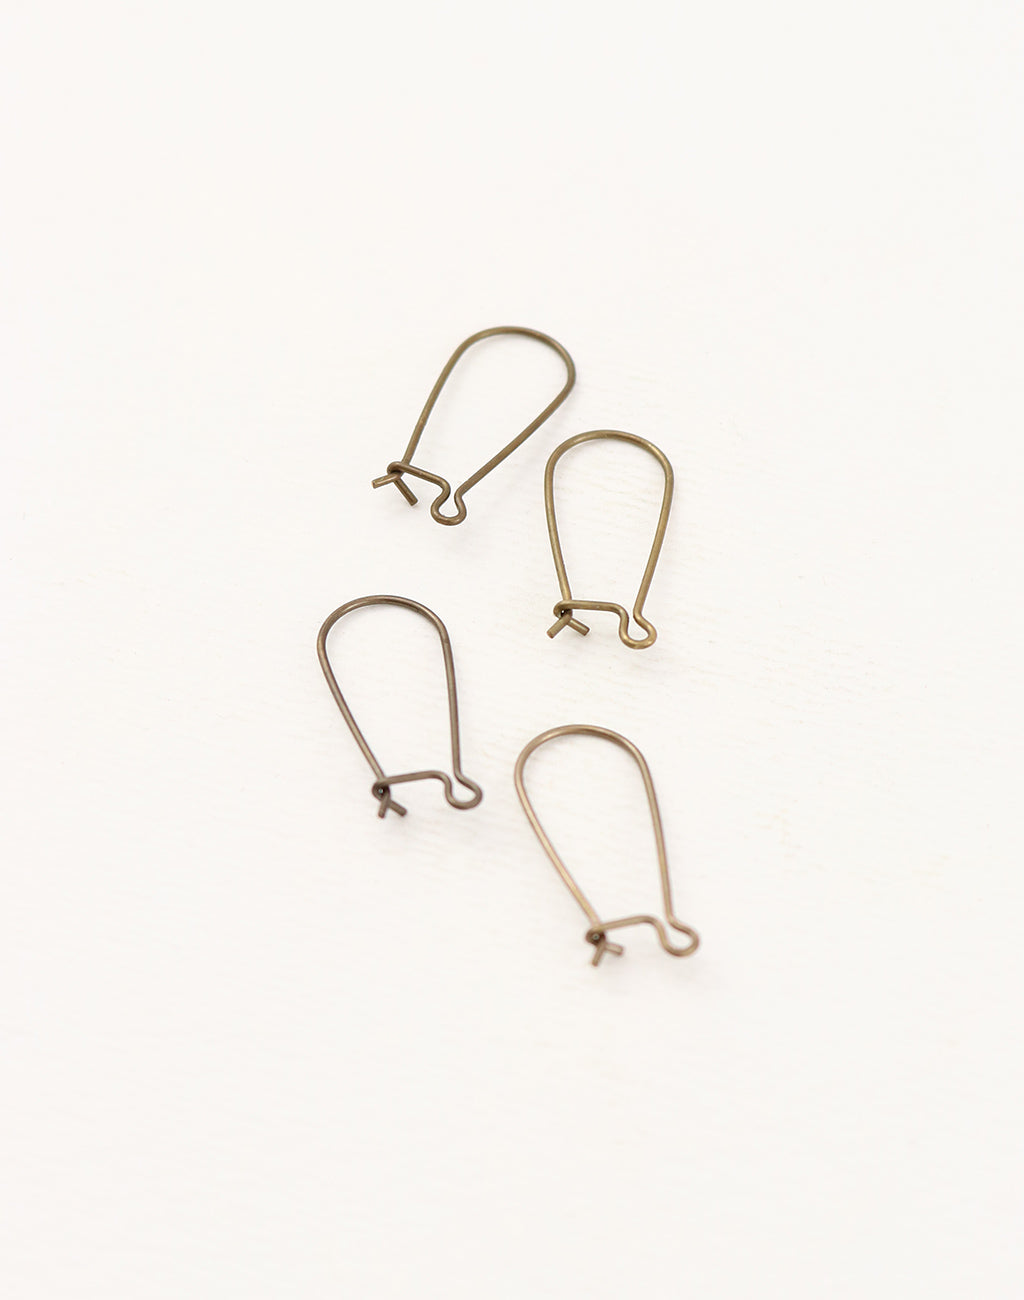 Arched Ear Wire, 20x9mm, (4pcs)